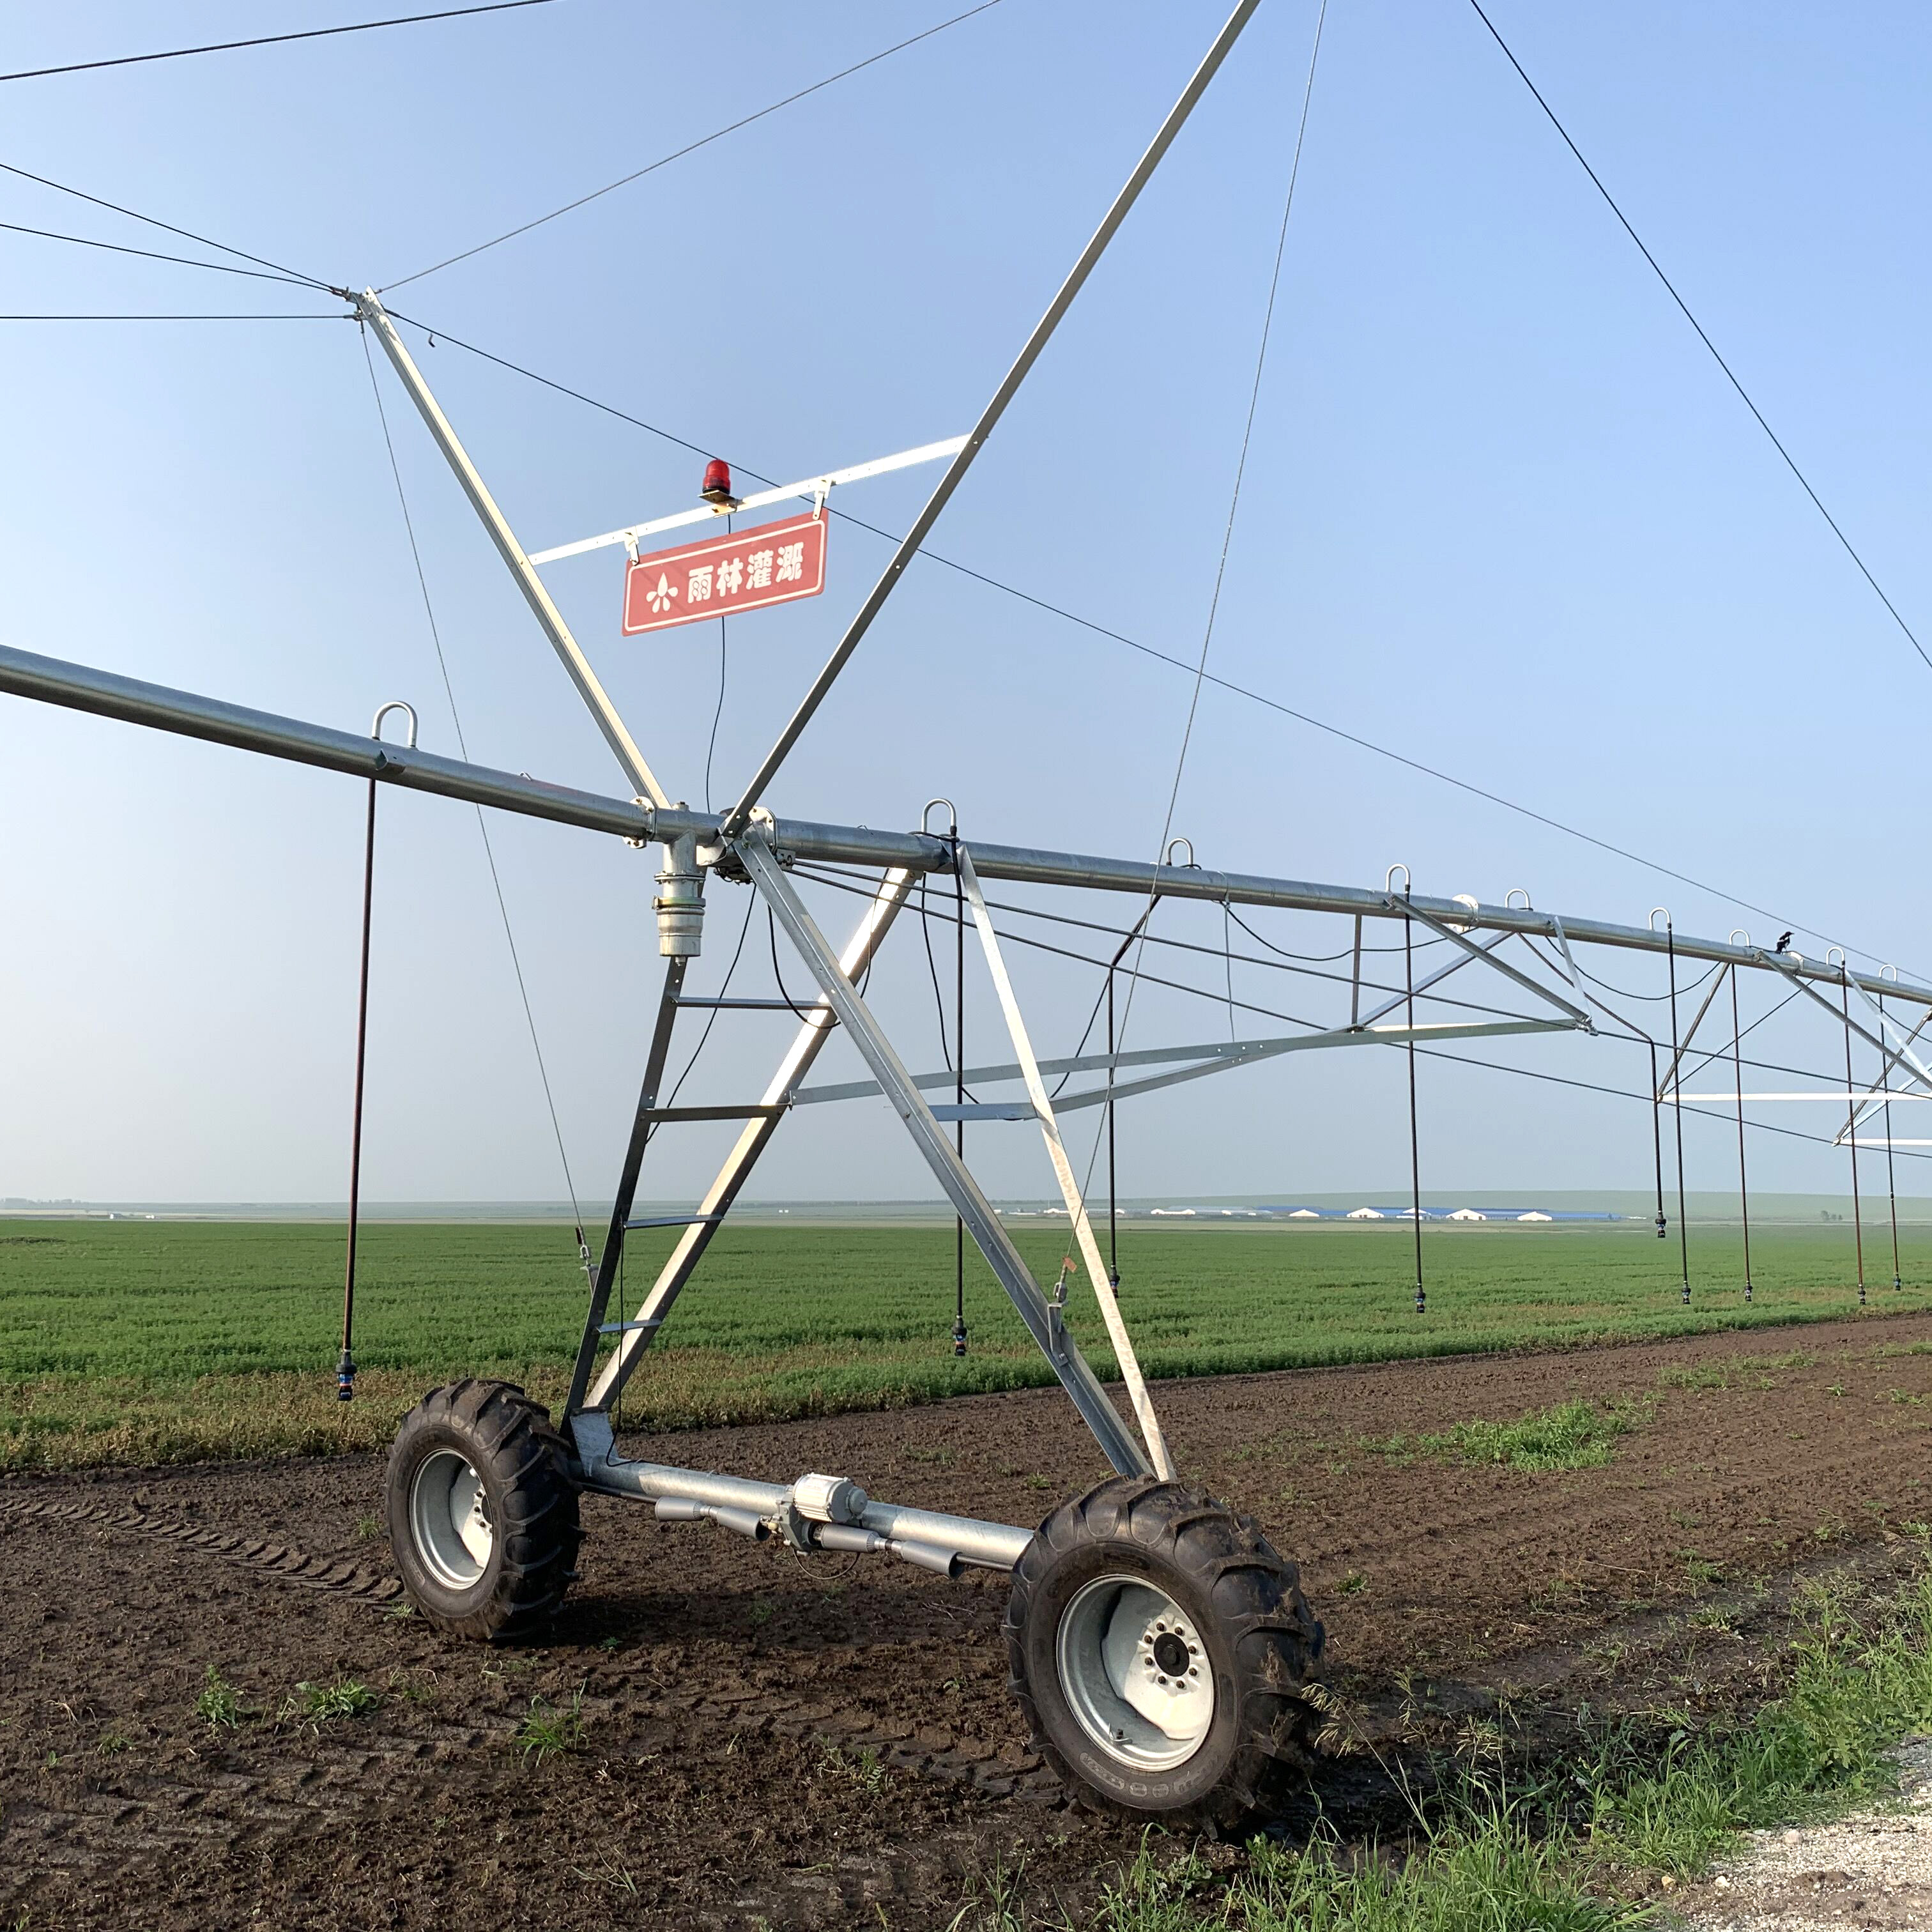 2021 Suppliers pivot irrigation system on sale Manufacturers, 2021 Suppliers pivot irrigation system on sale Factory, Supply 2021 Suppliers pivot irrigation system on sale